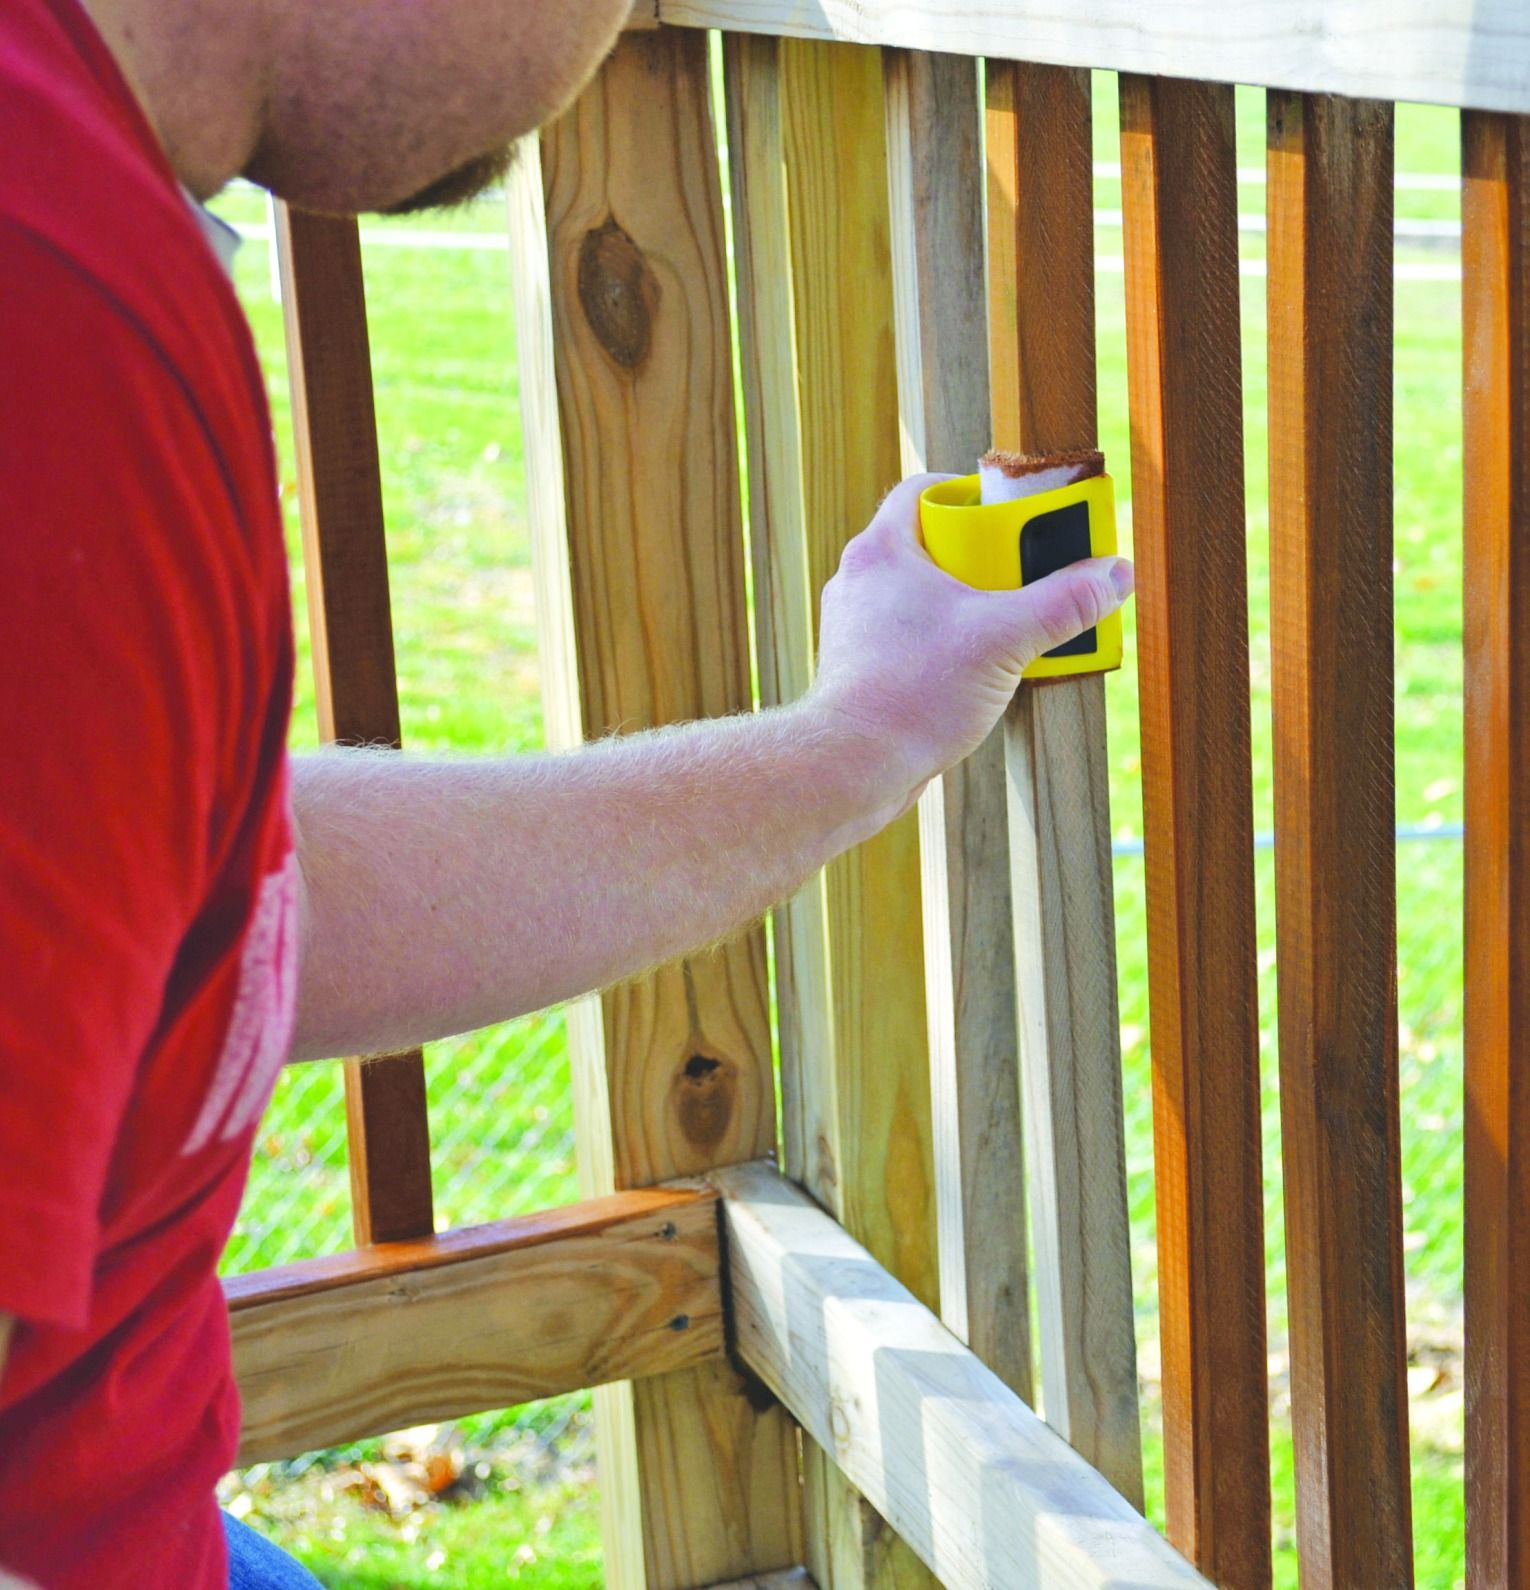 With A Woodmates Contour Stain Applicator You Can Stain All Your Stair Spindles In No Time Unlike Paintbru Staining Deck Diy Deck Staining Stain Applicators